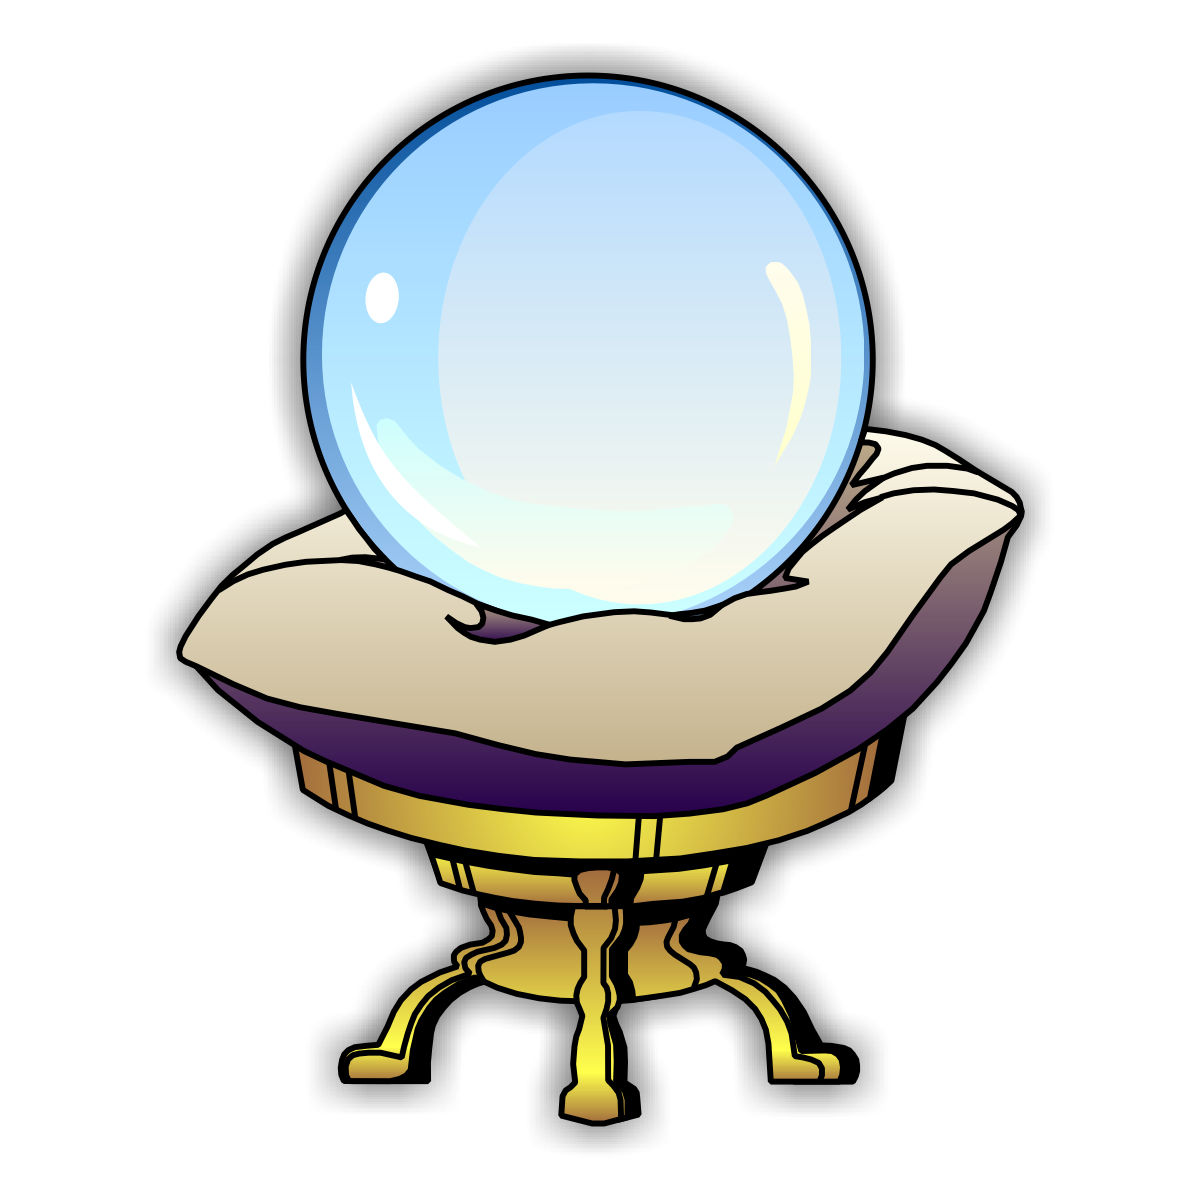 Animated crystal ball clipart clip black and white stock Free Crystal Ball Clipart, Download Free Clip Art, Free Clip Art on ... clip black and white stock